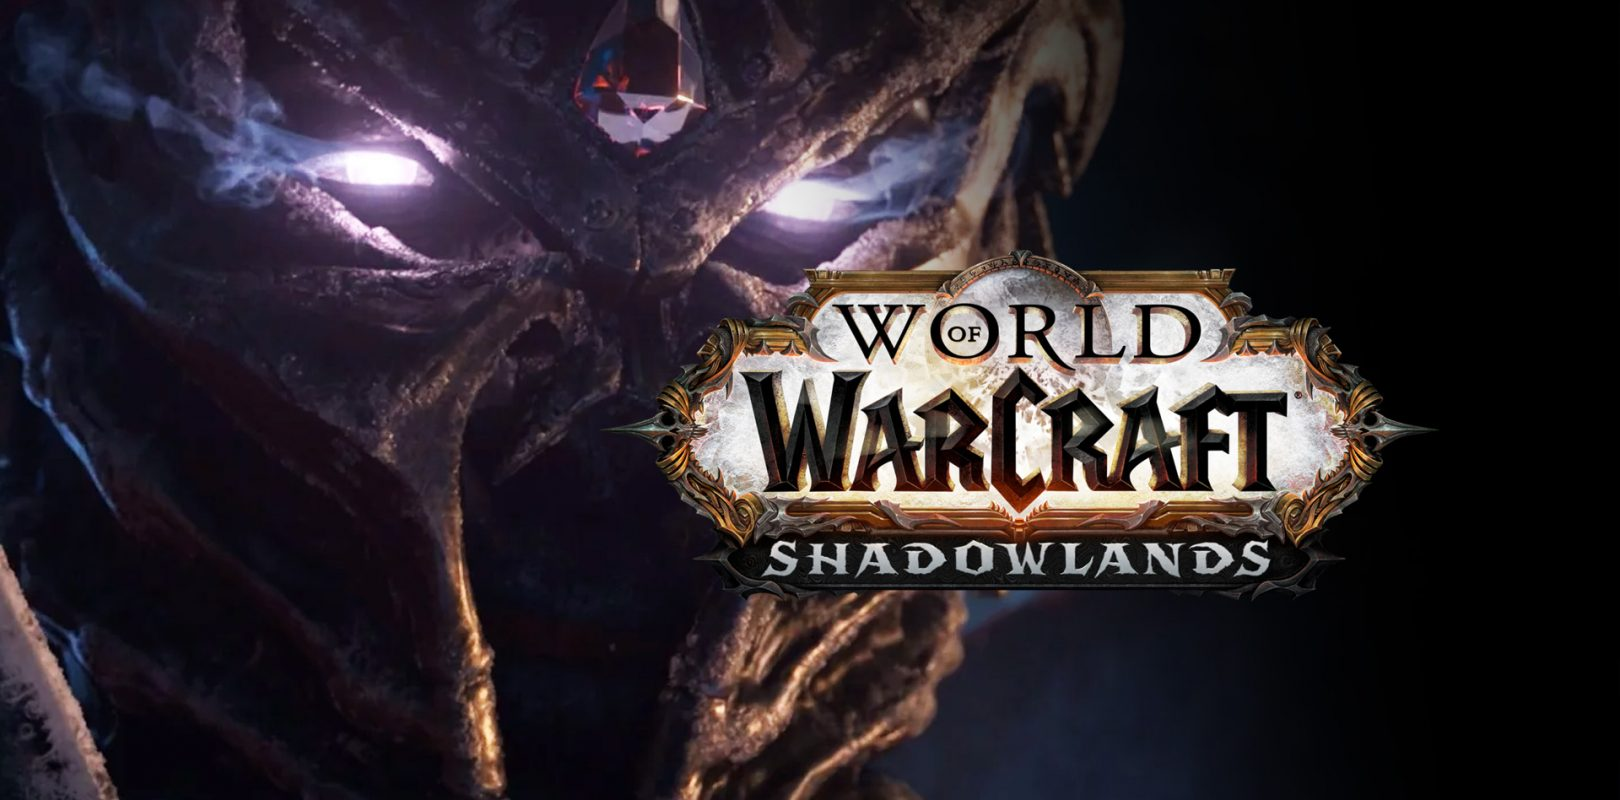 Wow shadowlands release date